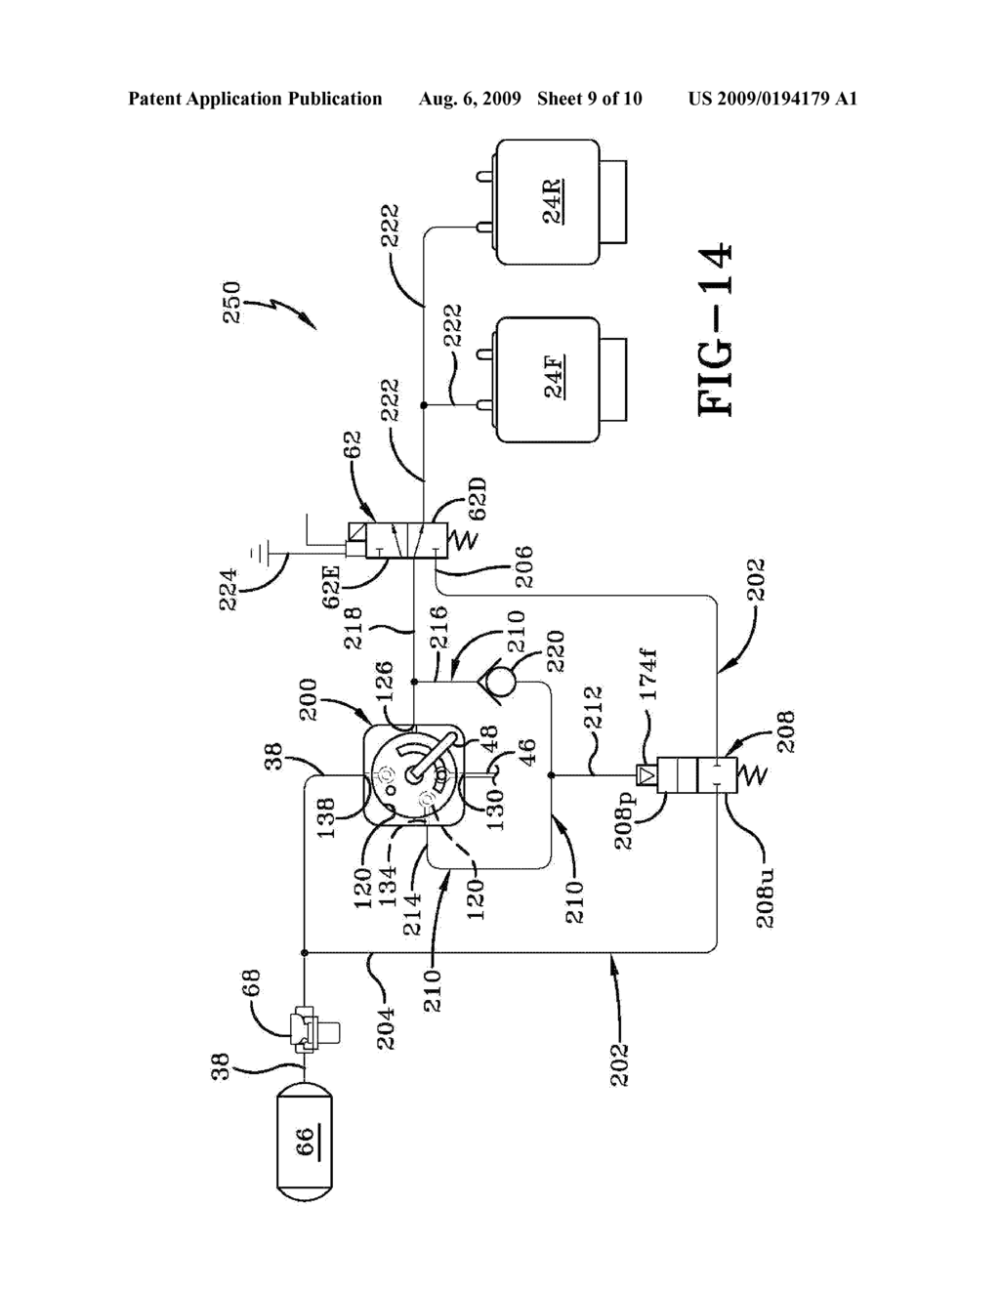 medium resolution of multi stage height control valve including position sensitive pilot signal and pressure boost for vehicle air springs diagram schematic and image 10